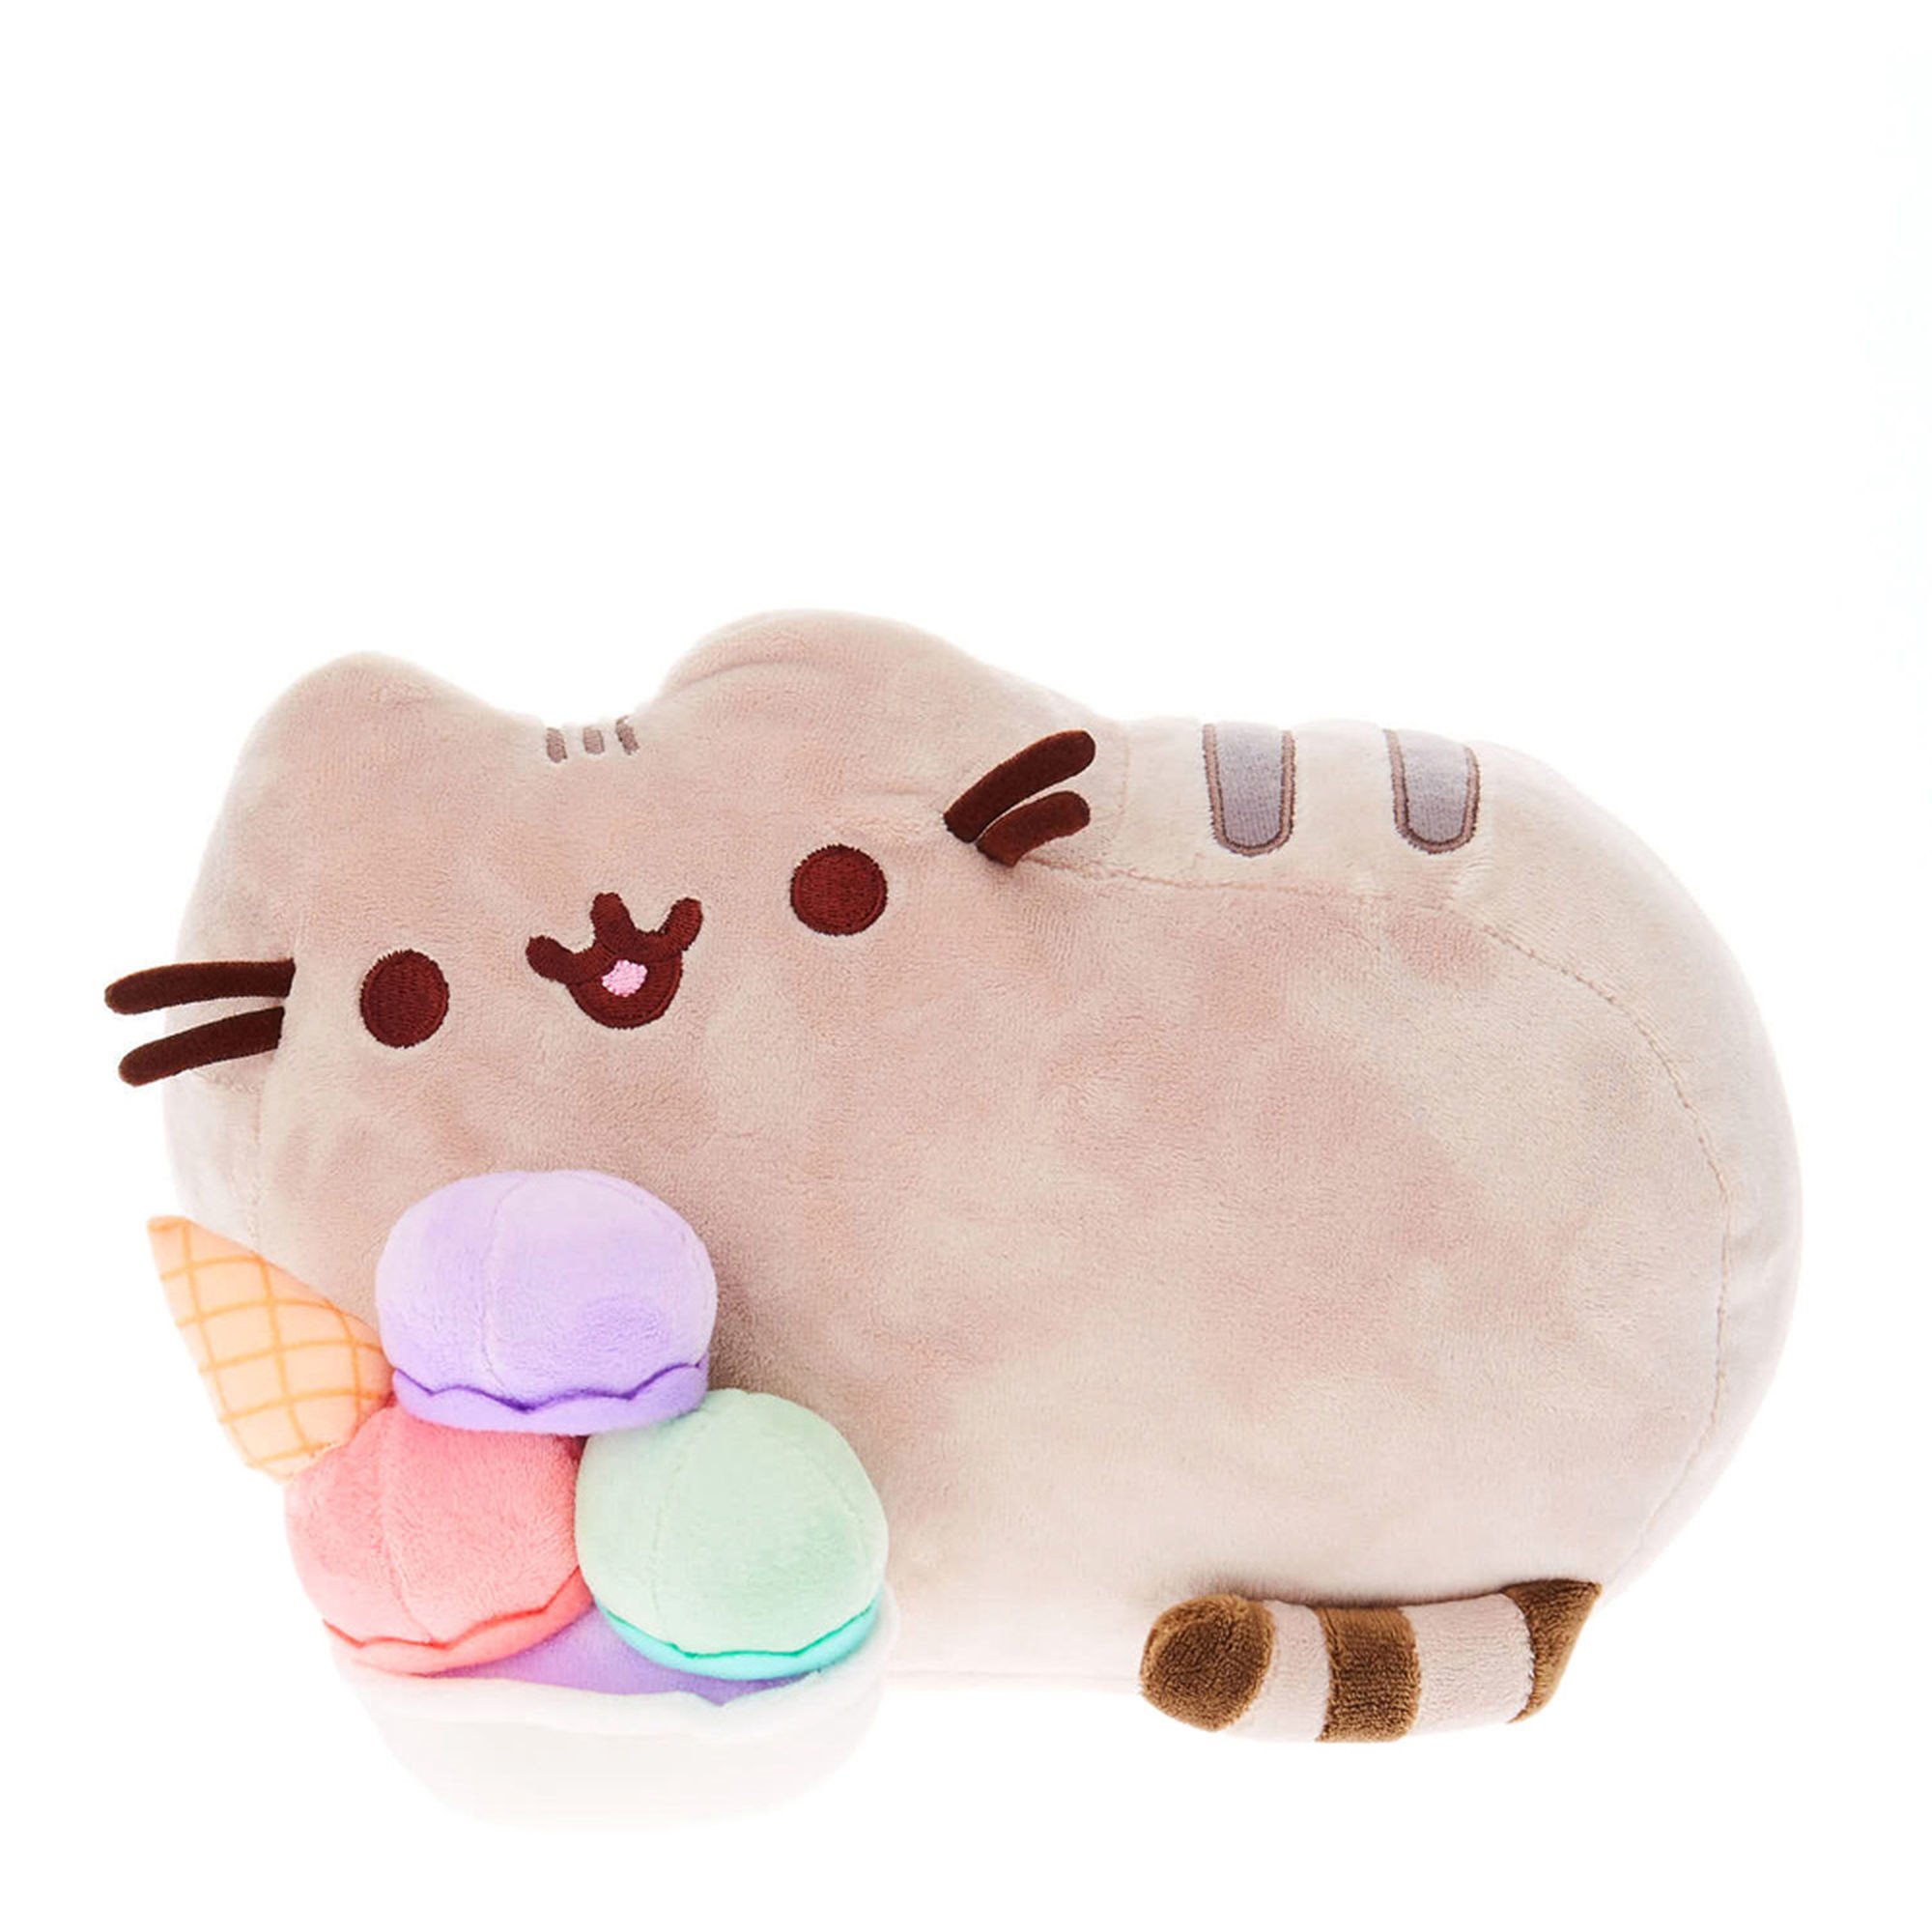 Cute Wallpapers For Bff For 5 Pusheen Cat Desktop Wallpaper 59 Images